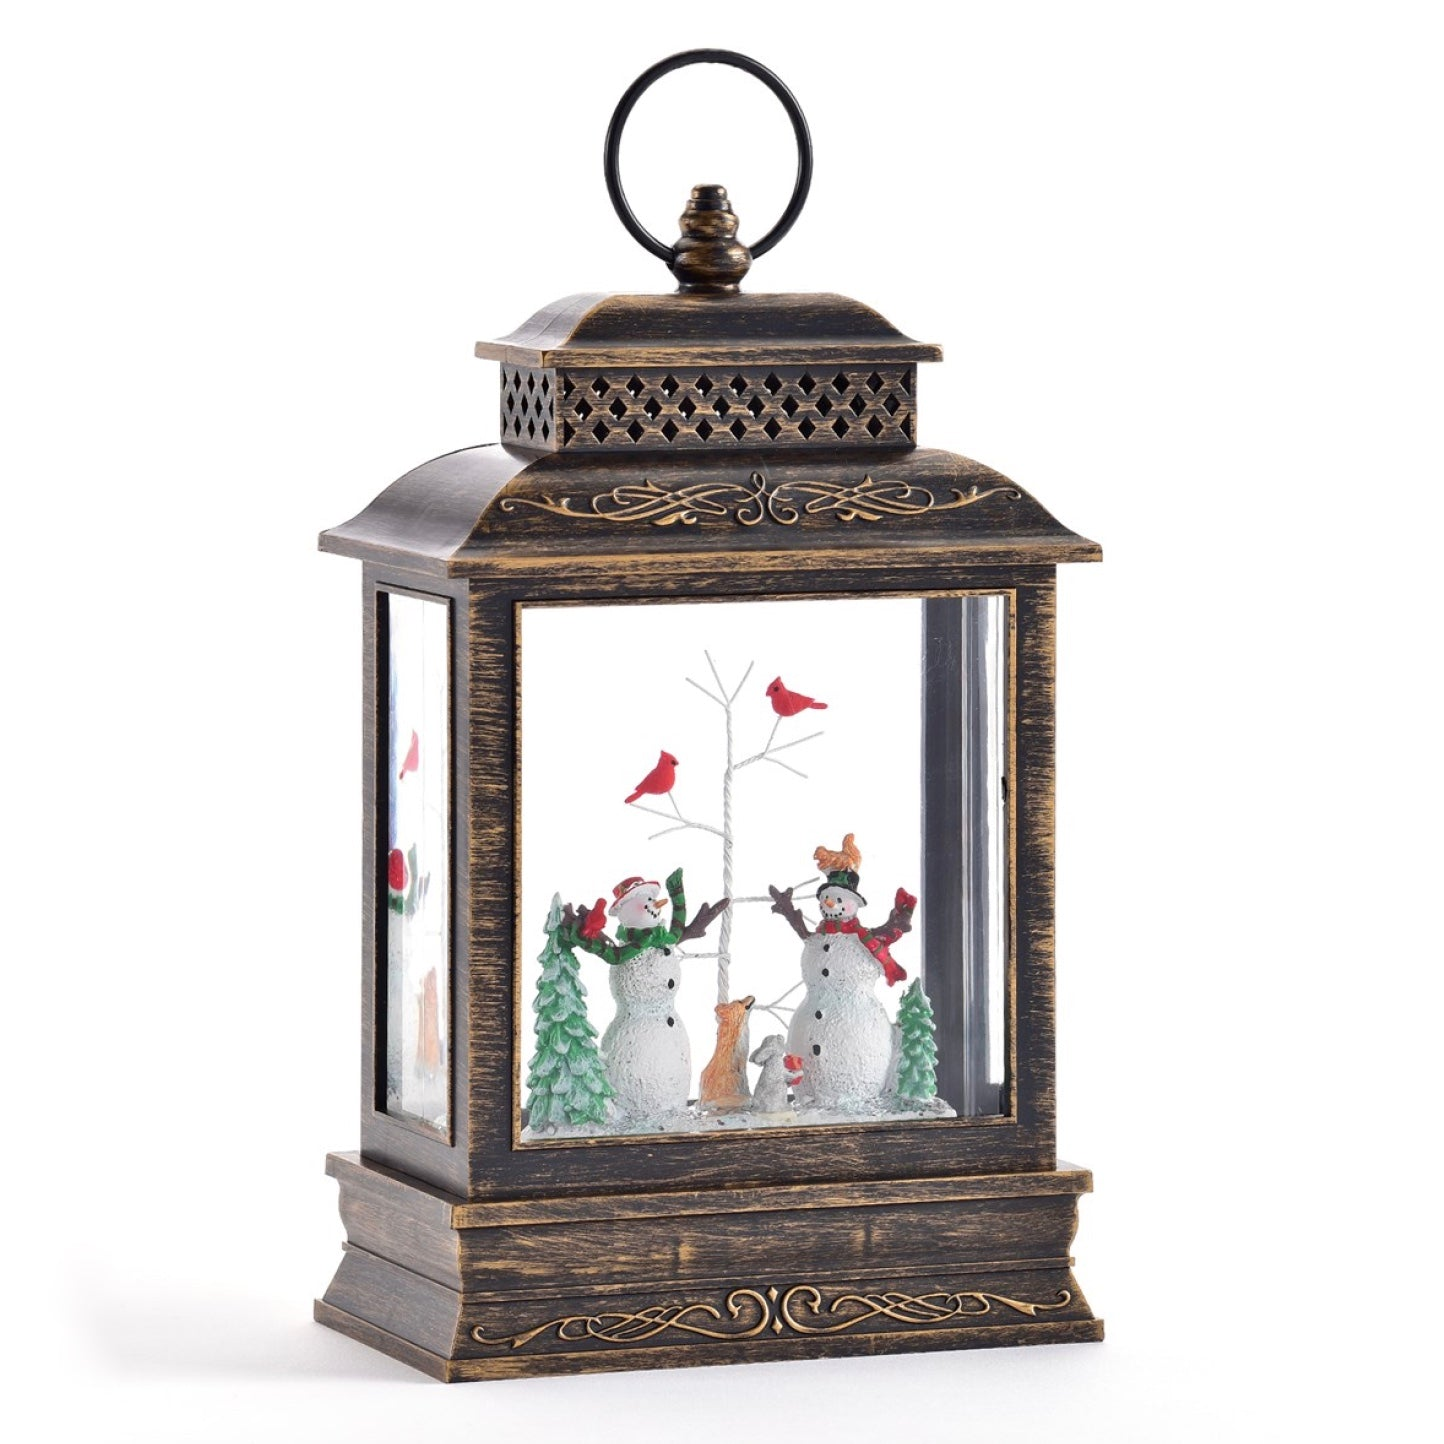 Perpetual Lantern with Snowman Scene and LED Light | Putti Christmas Celebrations